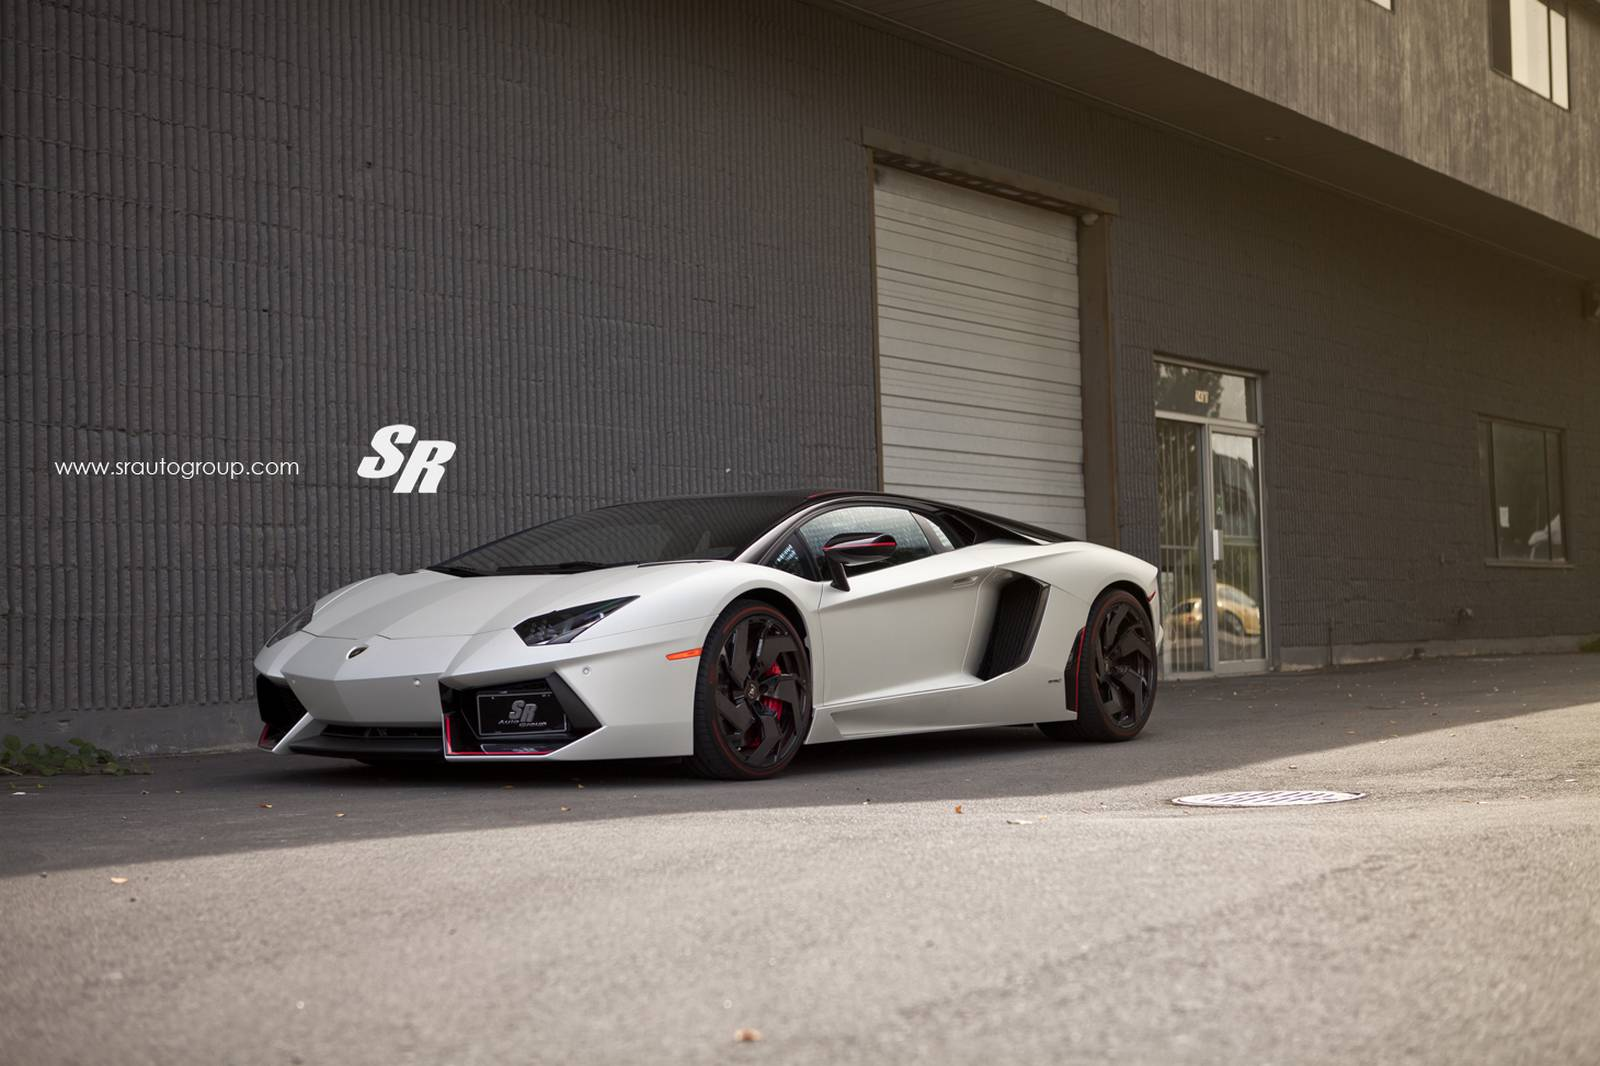 pirelli edition lamborghini aventador with gloss black pur. Black Bedroom Furniture Sets. Home Design Ideas